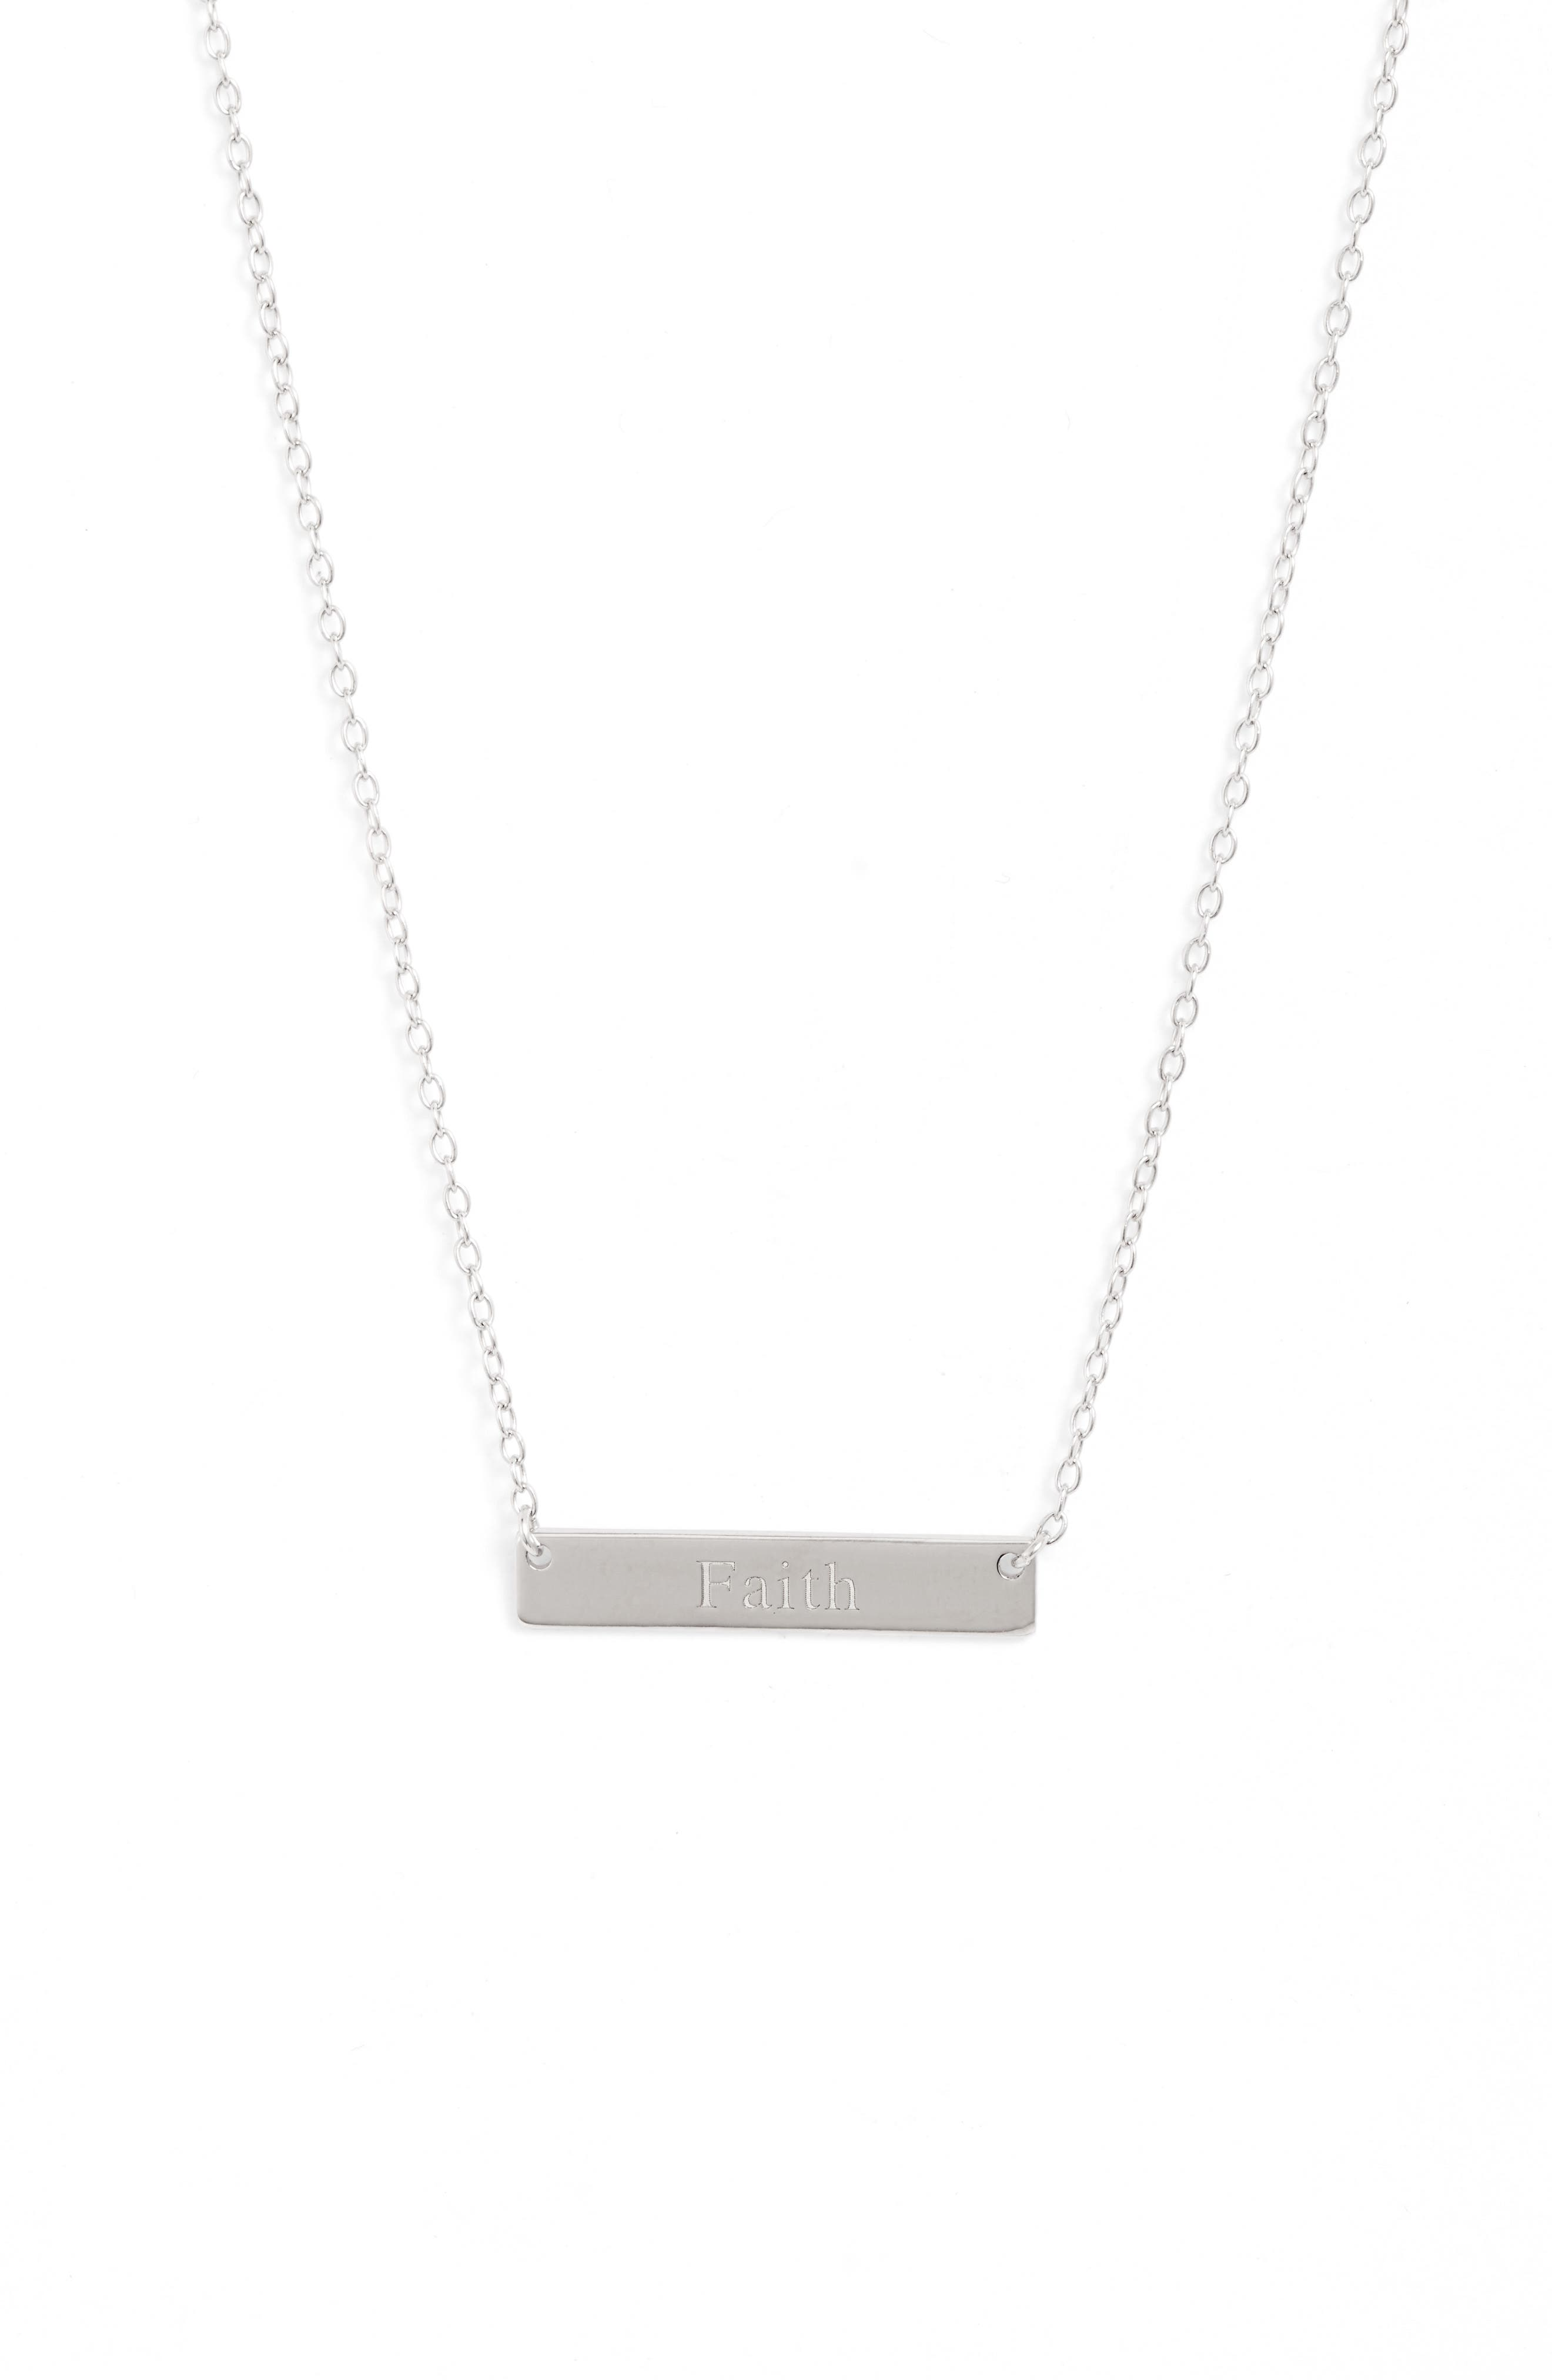 A simple design featuring a gleaming bar pendant embossed with an inspiring message defines this understated necklace. Style Name: Sterling Forever Faith Bar Pendant Necklace. Style Number: 5904774. Available in stores.